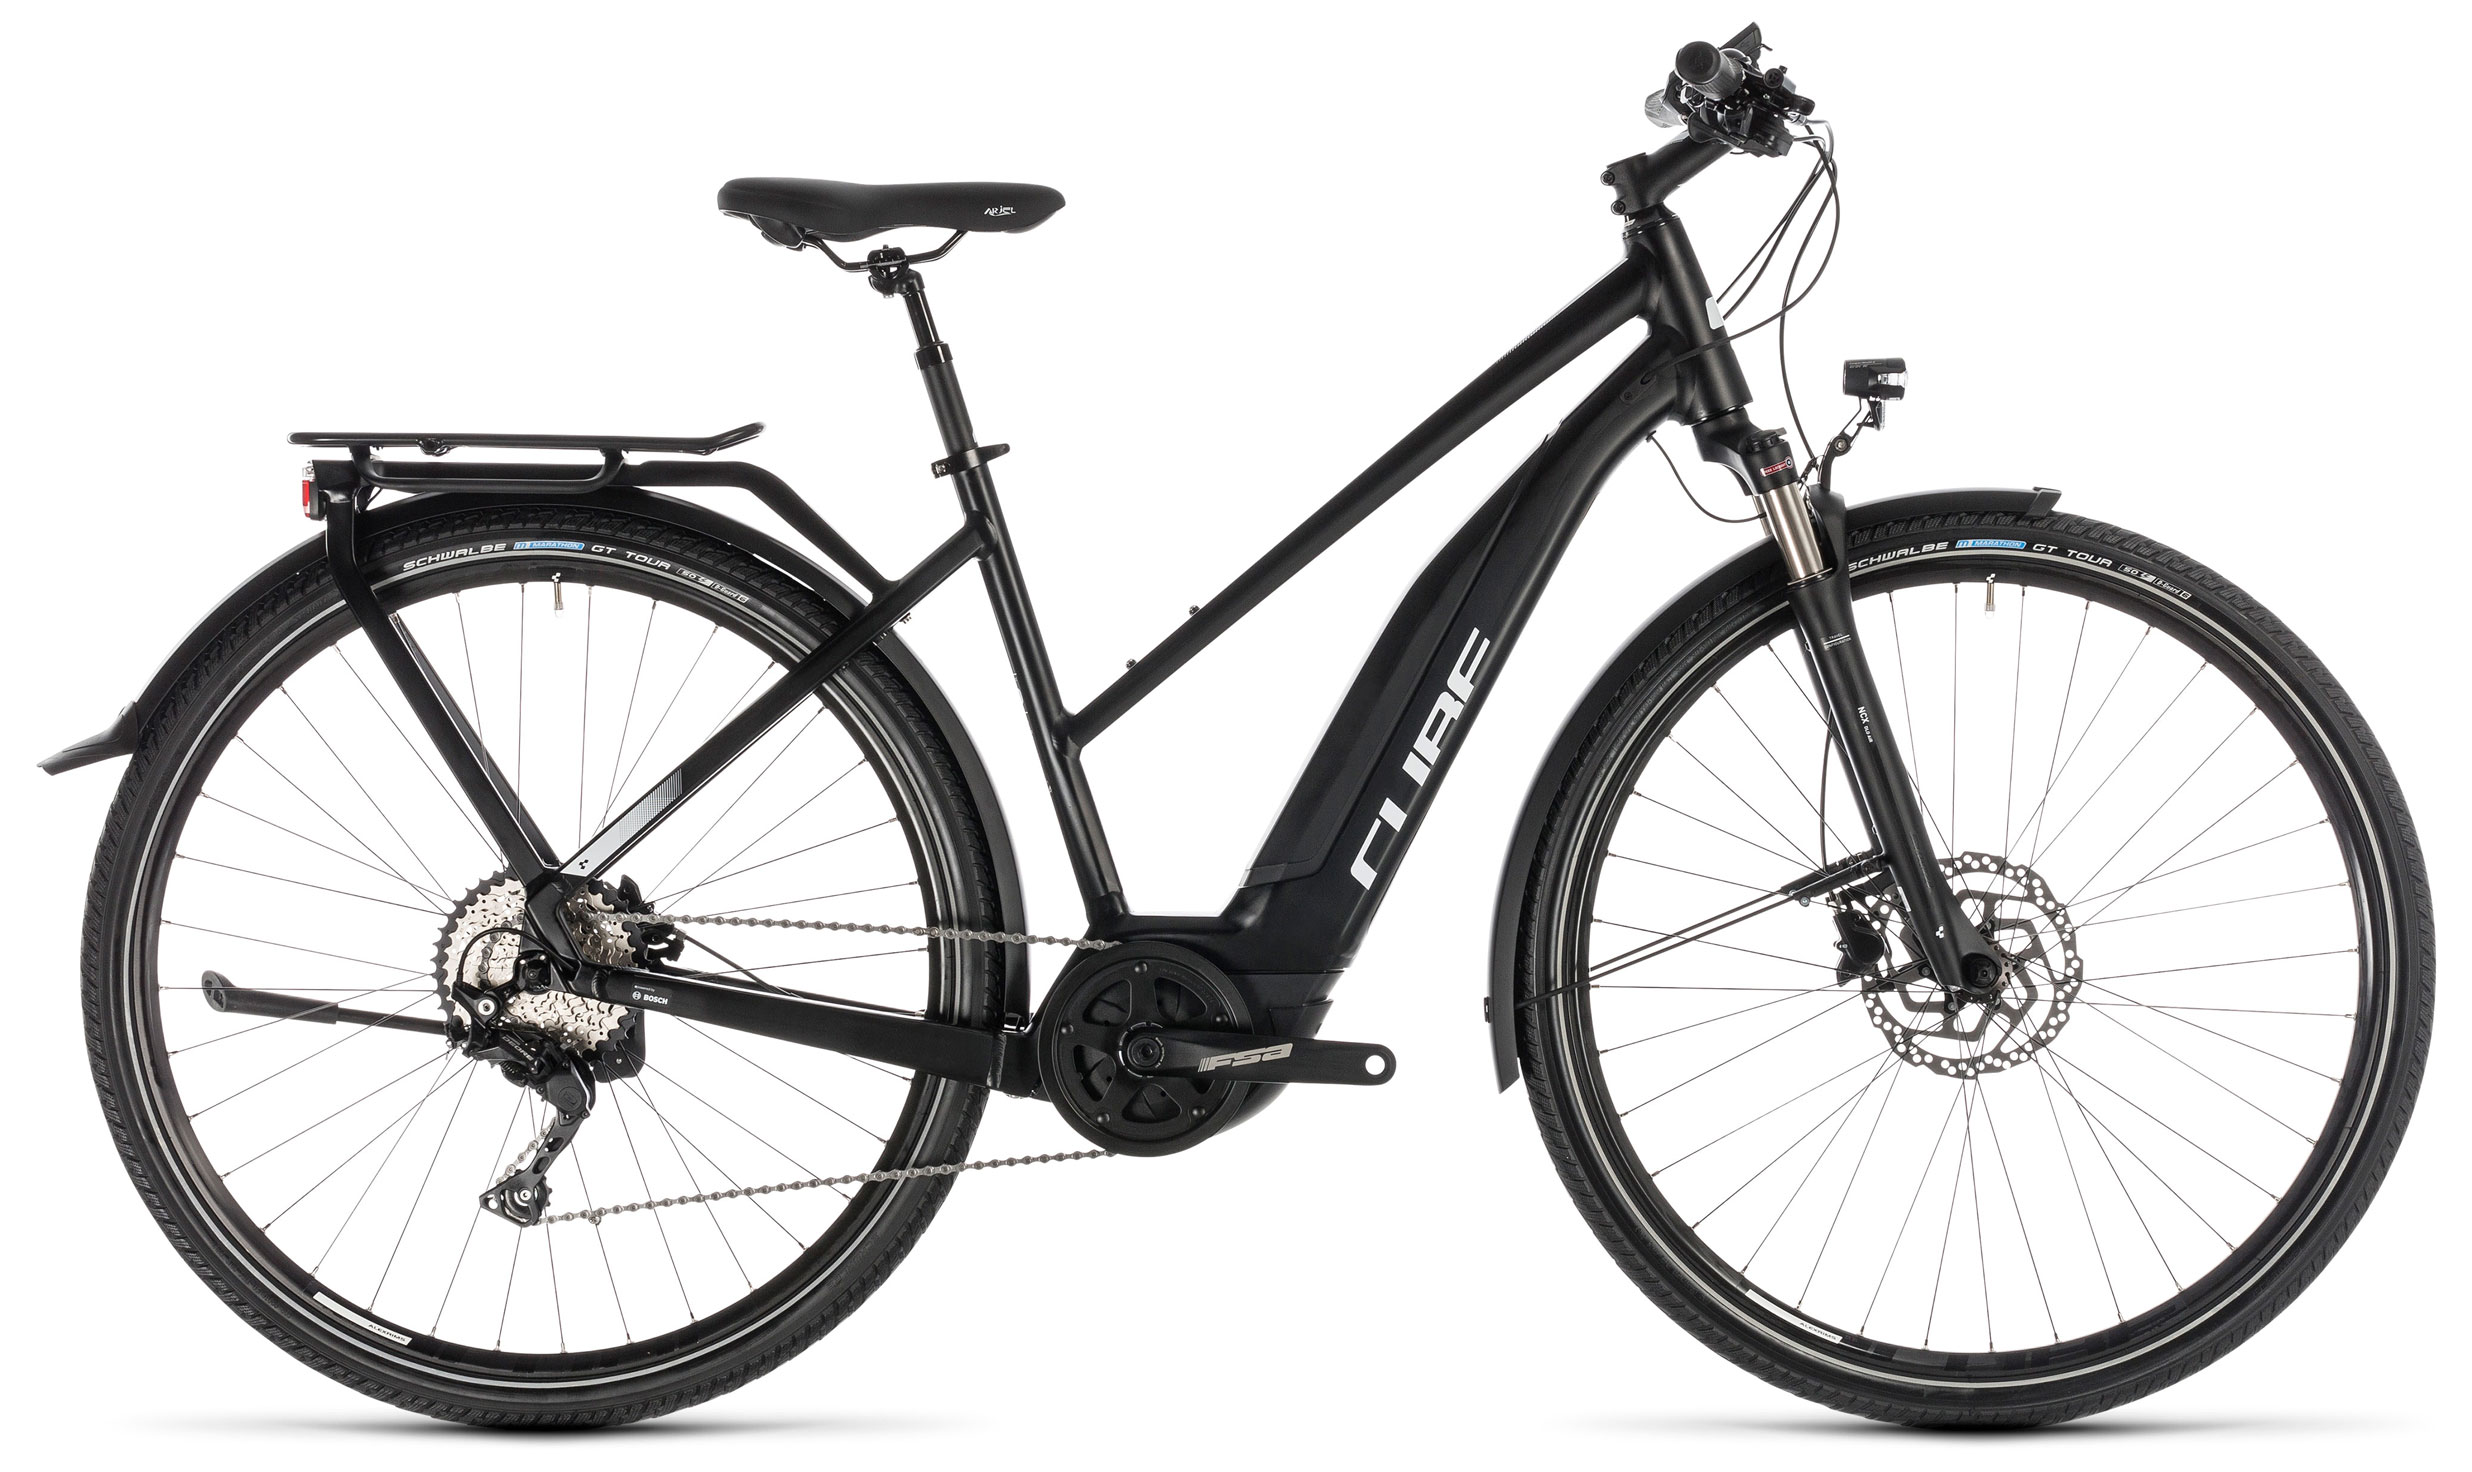 Велосипед Cube Touring Hybrid Pro 500 Trapez 2019 велосипед cube touring hybrid one 400 lady 2018